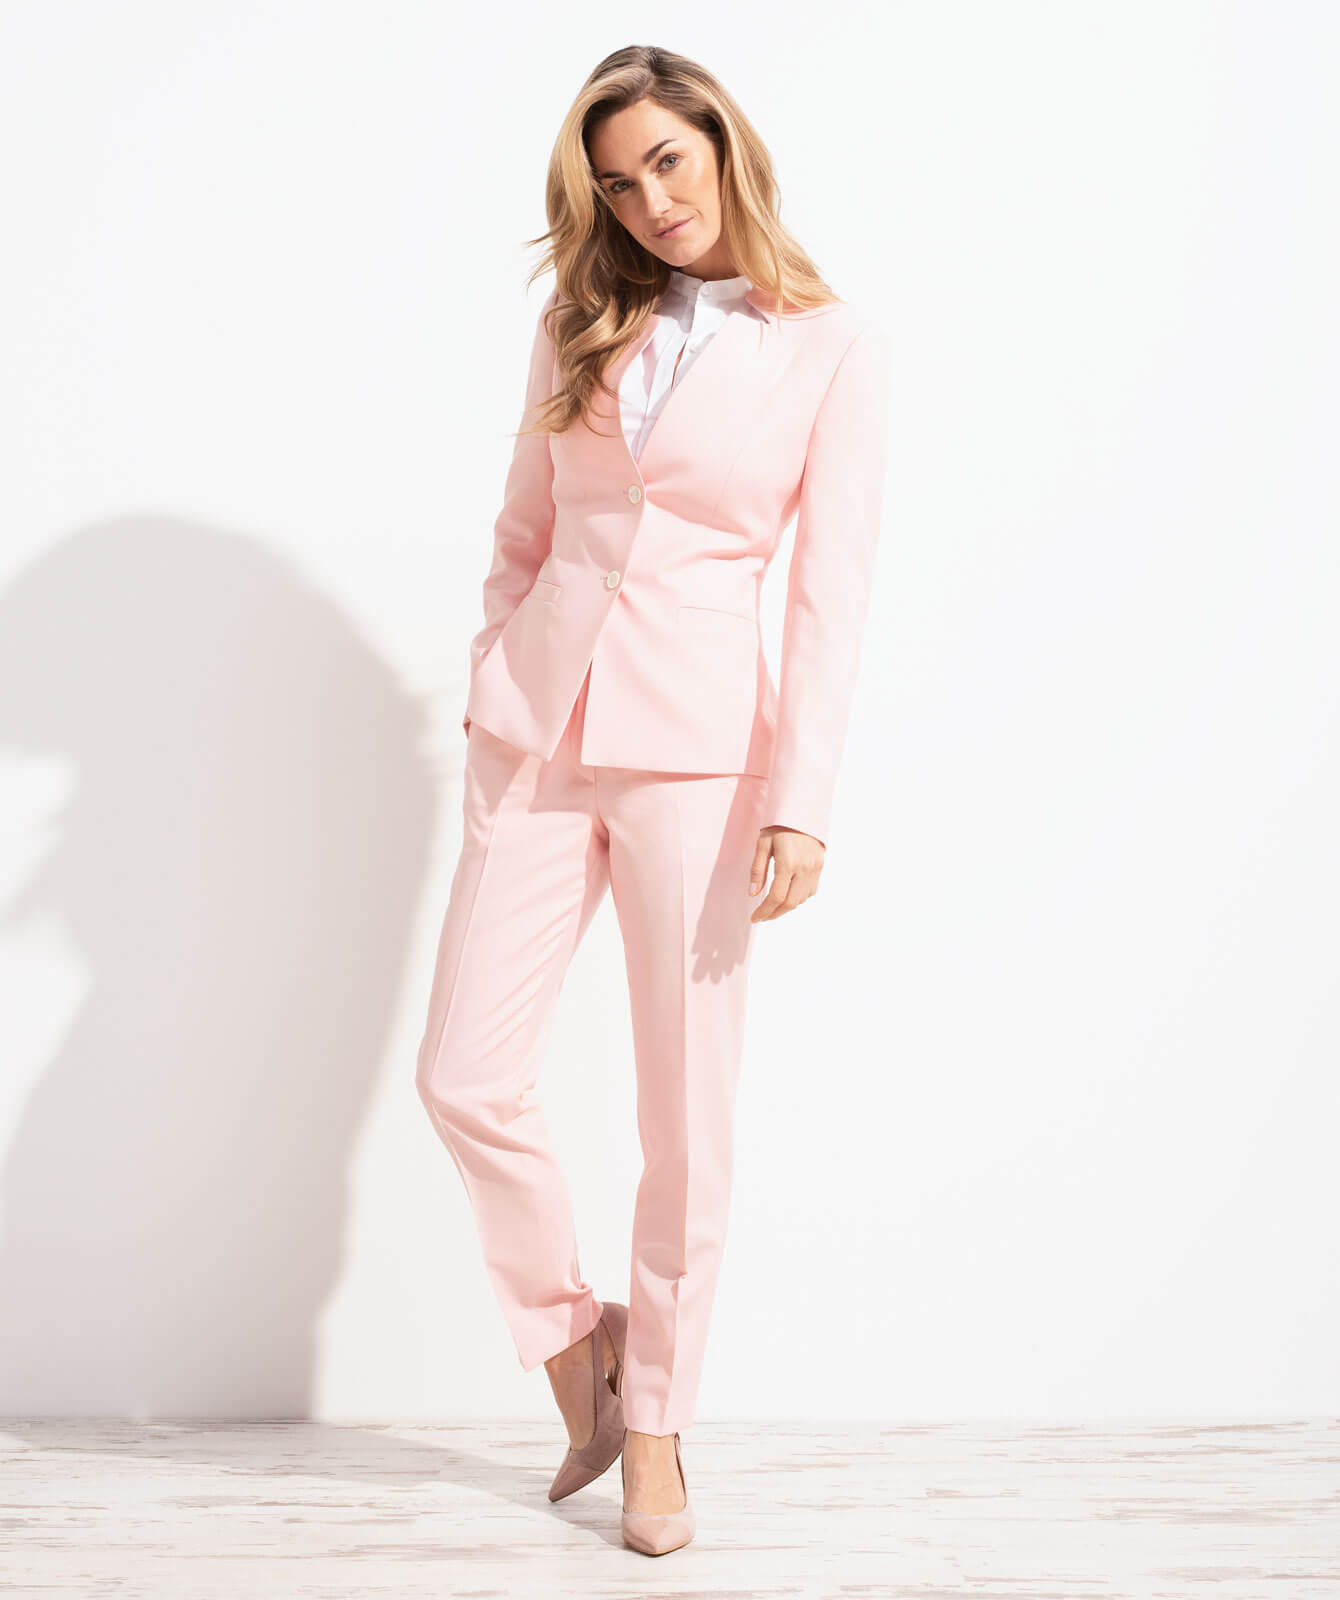 Pastell-Look in softem Rosa